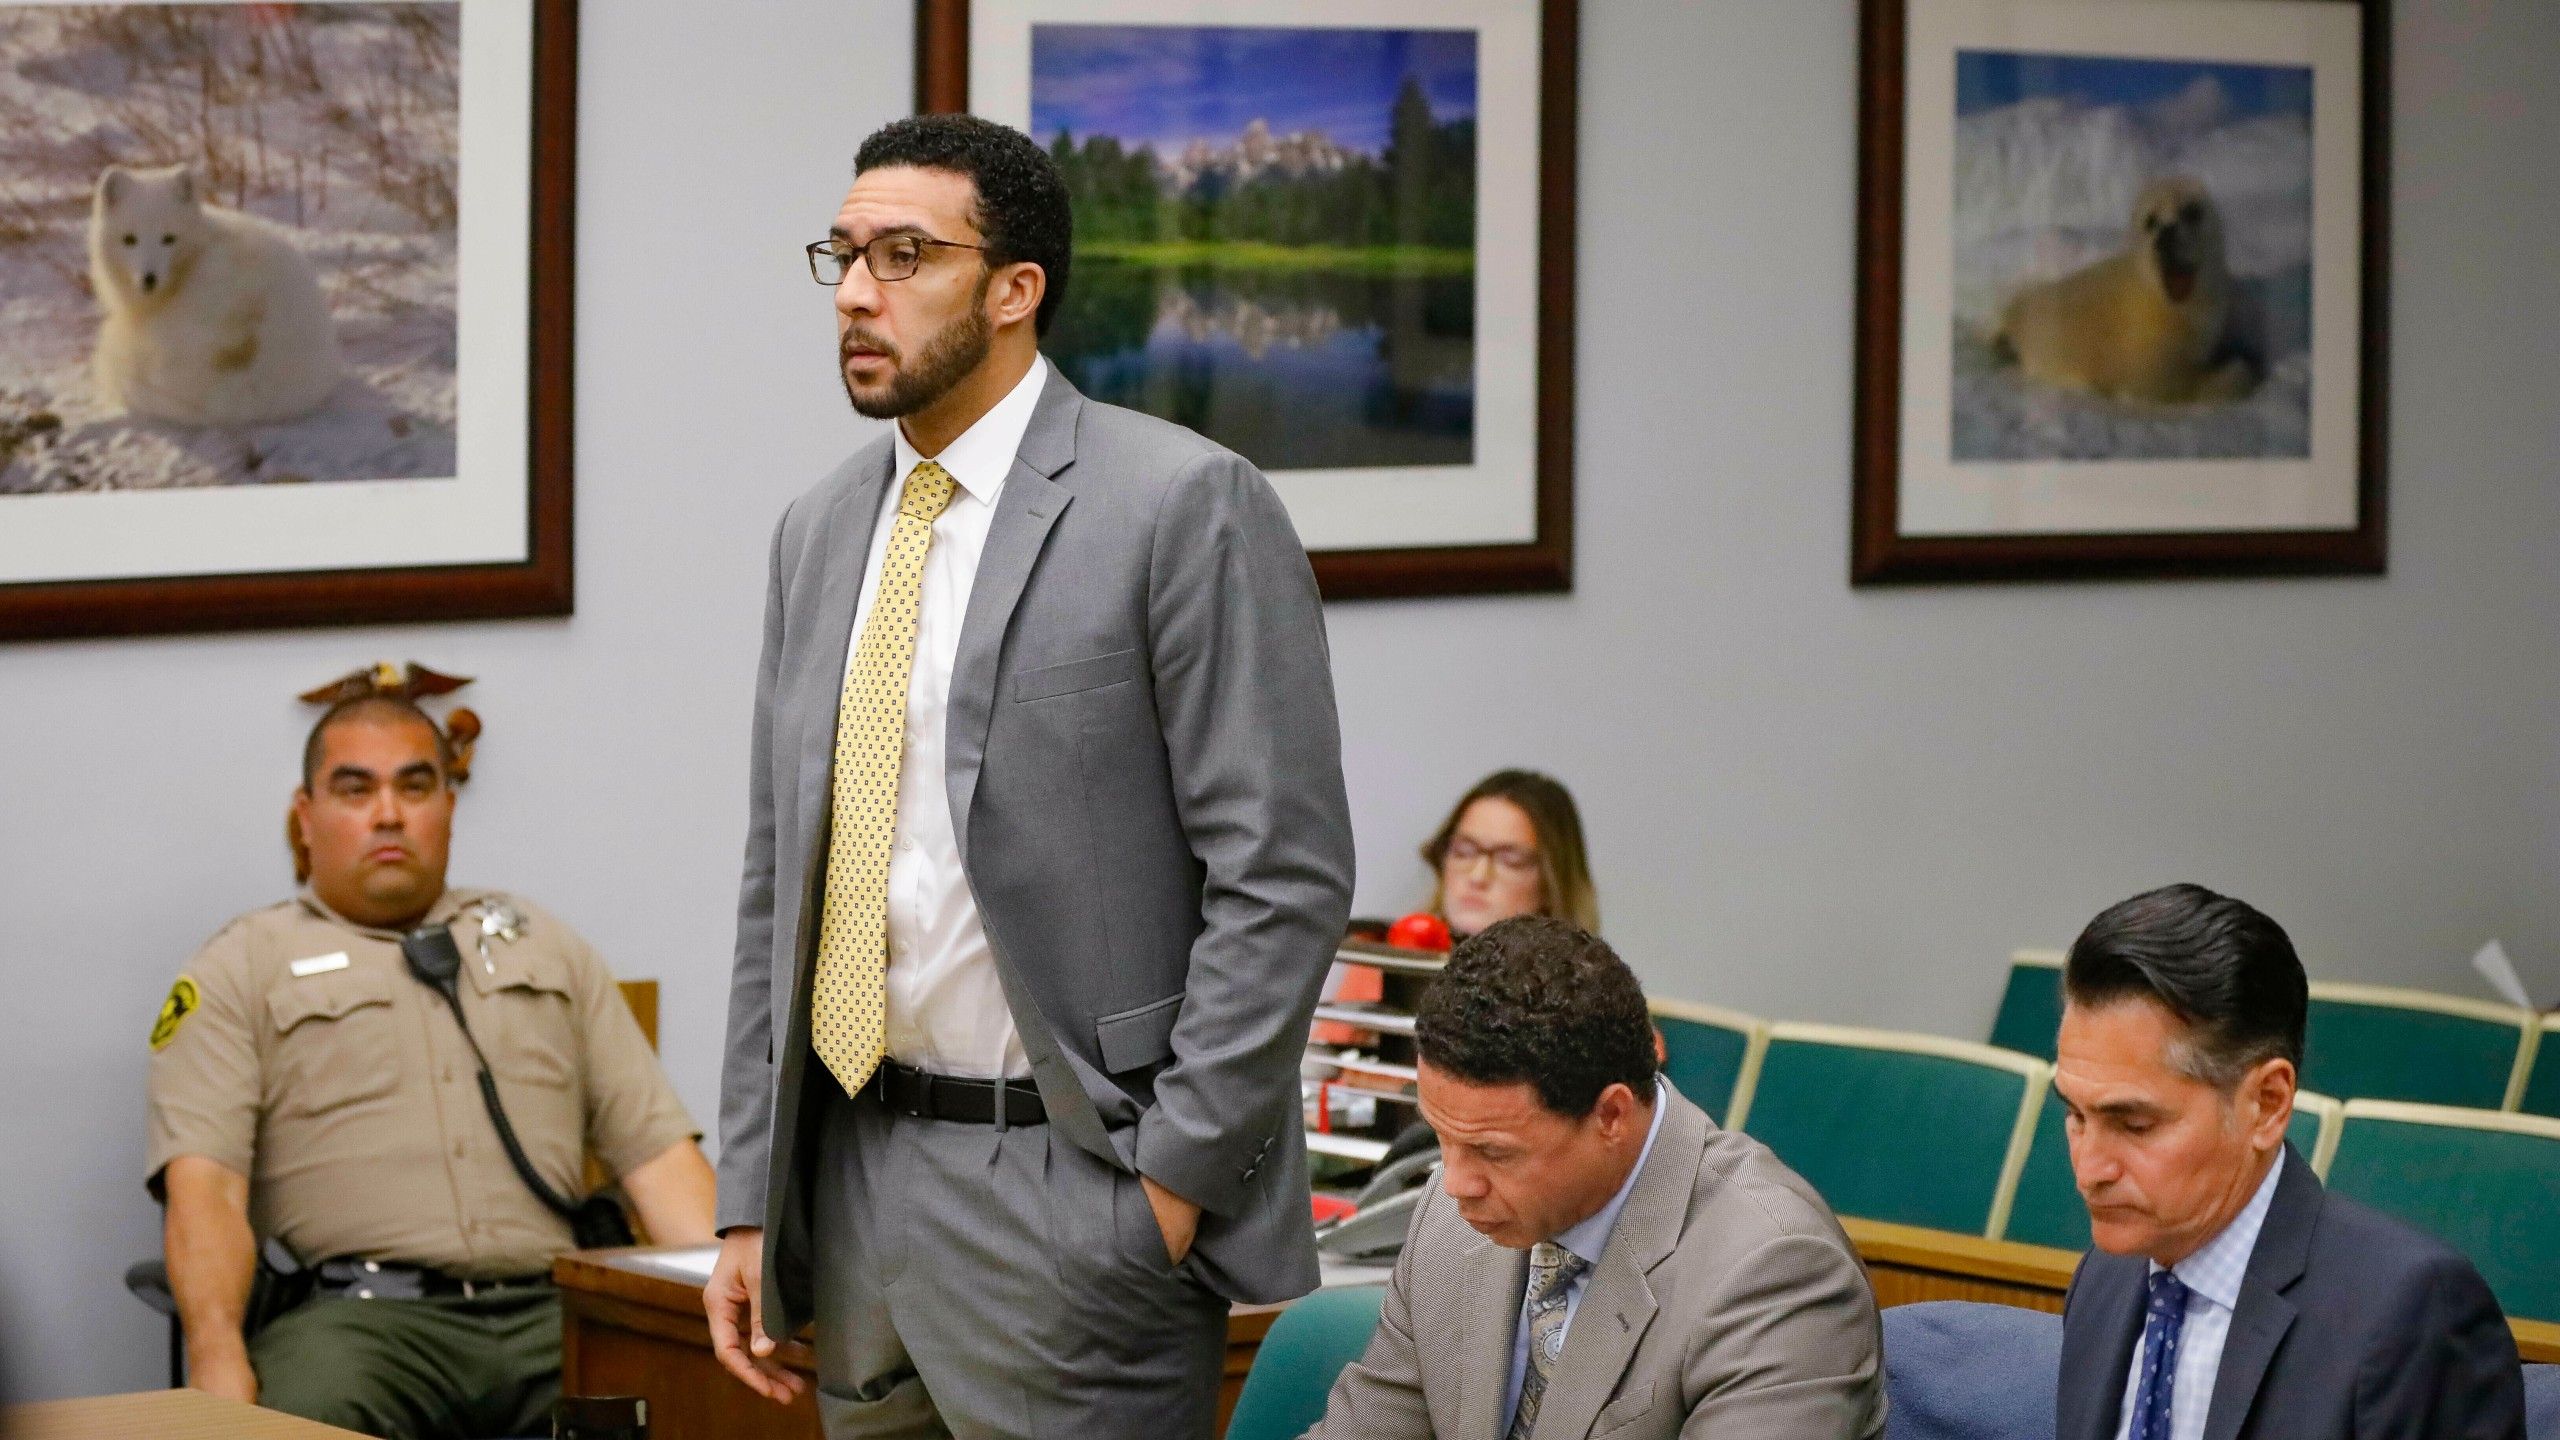 In this June 14, 2019, file photo Ex-NFL player Kellen Winslow II, standing, who was accused of committing several sex crimes against women in North County last year, including rape, answers a question from San Diego County Superior Court Vista Judge Blaine Bowman during a status hearing in Vista, Calif. (Howard Lipin/The San Diego Union-Tribune via AP, Pool,File)